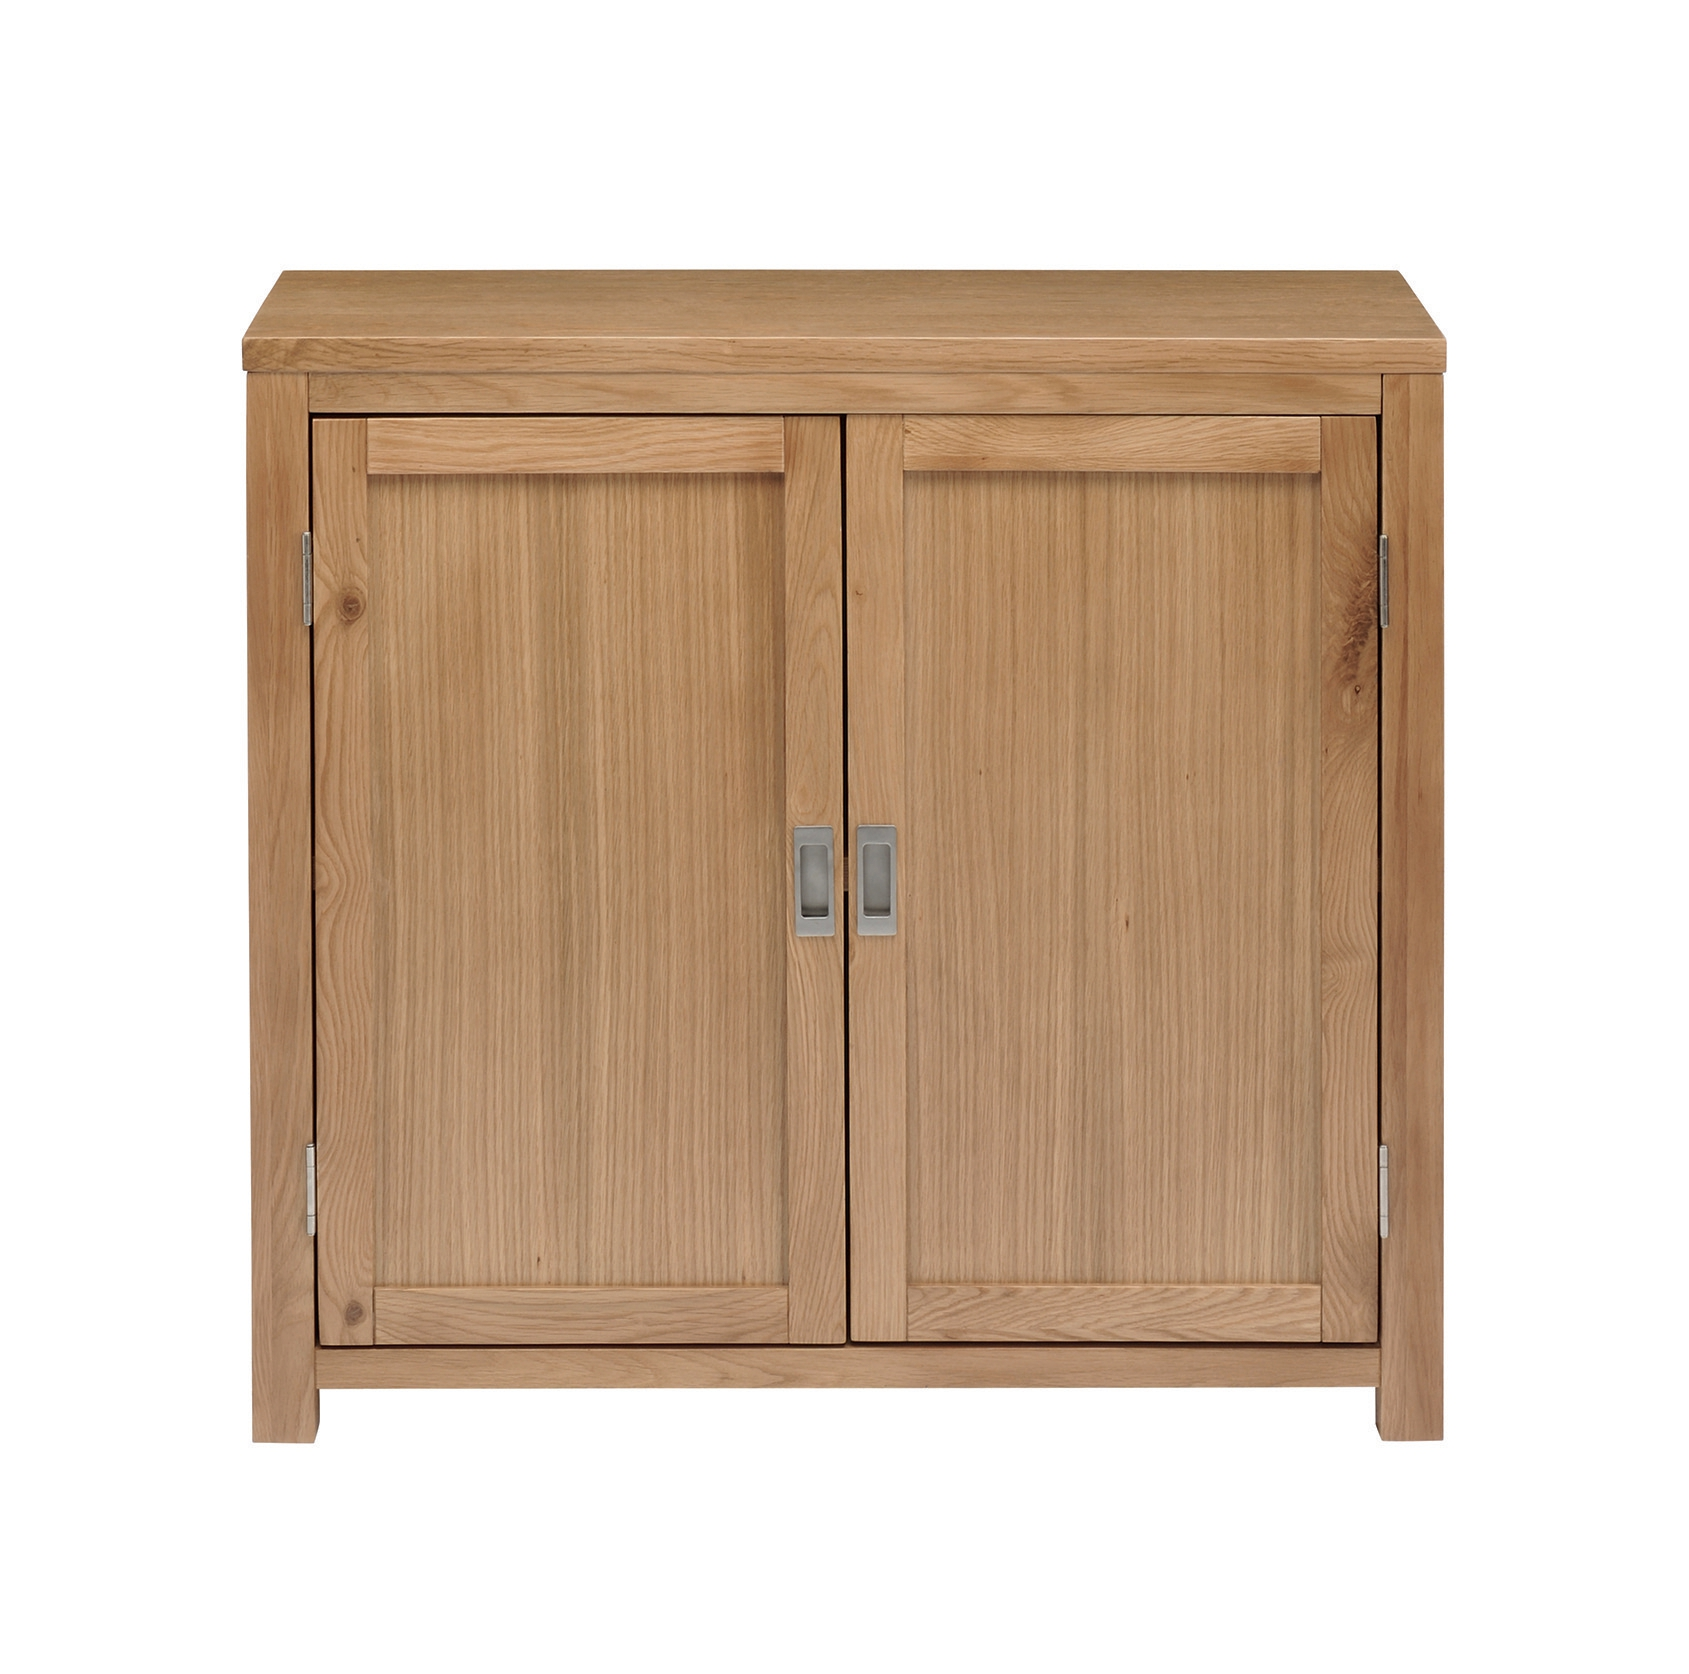 Image for &Adroit Oak Base Cabinet with Doors